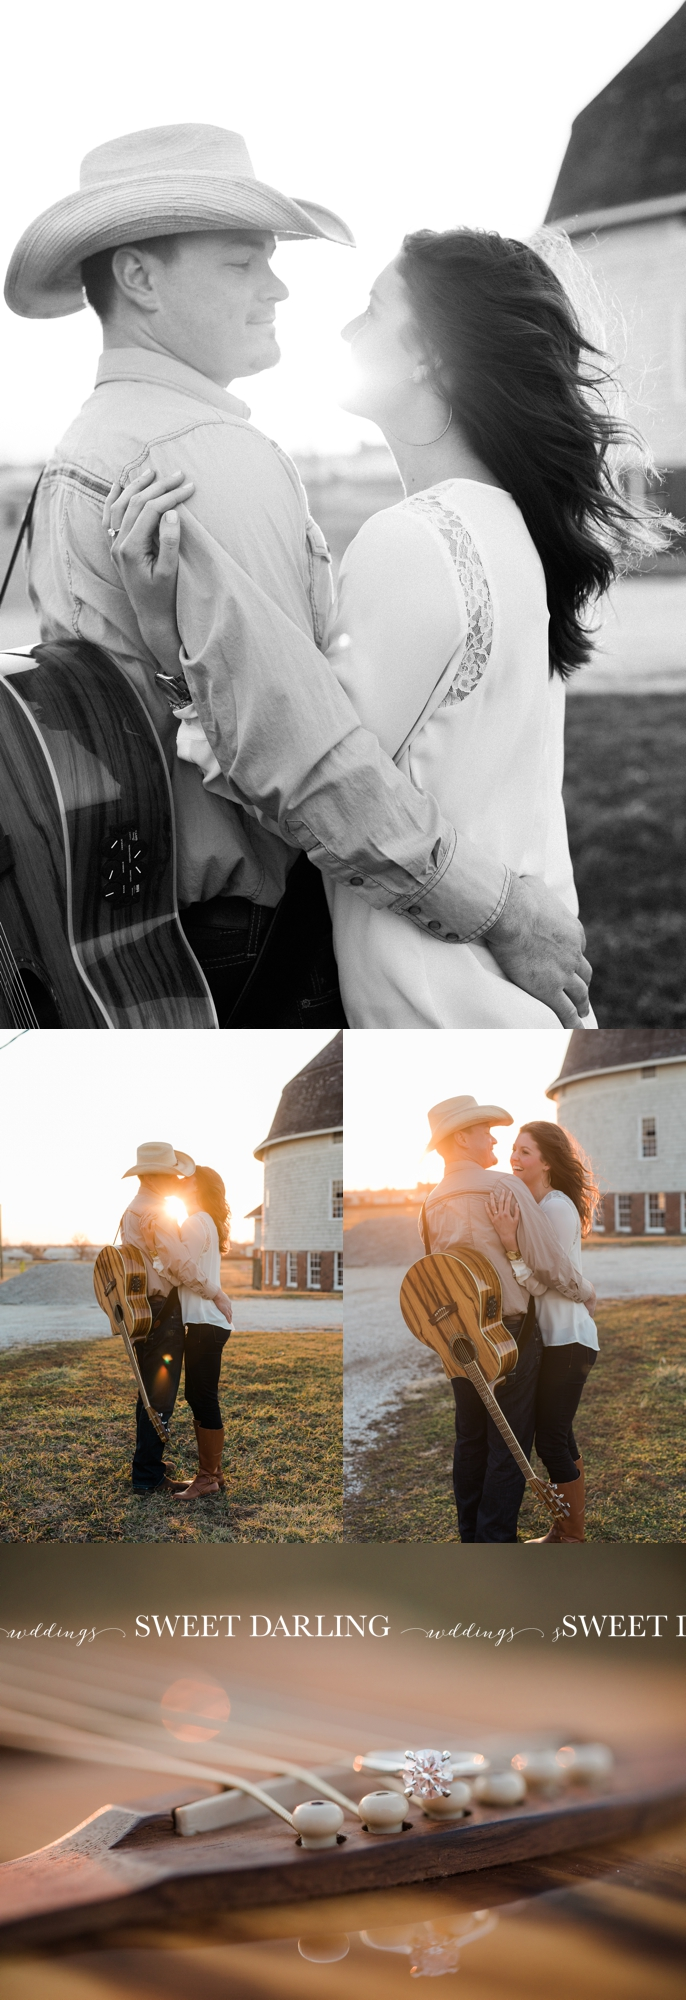 Urbana-Champaign-County-IL-engagement-session-wedding-photographer-love-guitar_1458.jpg